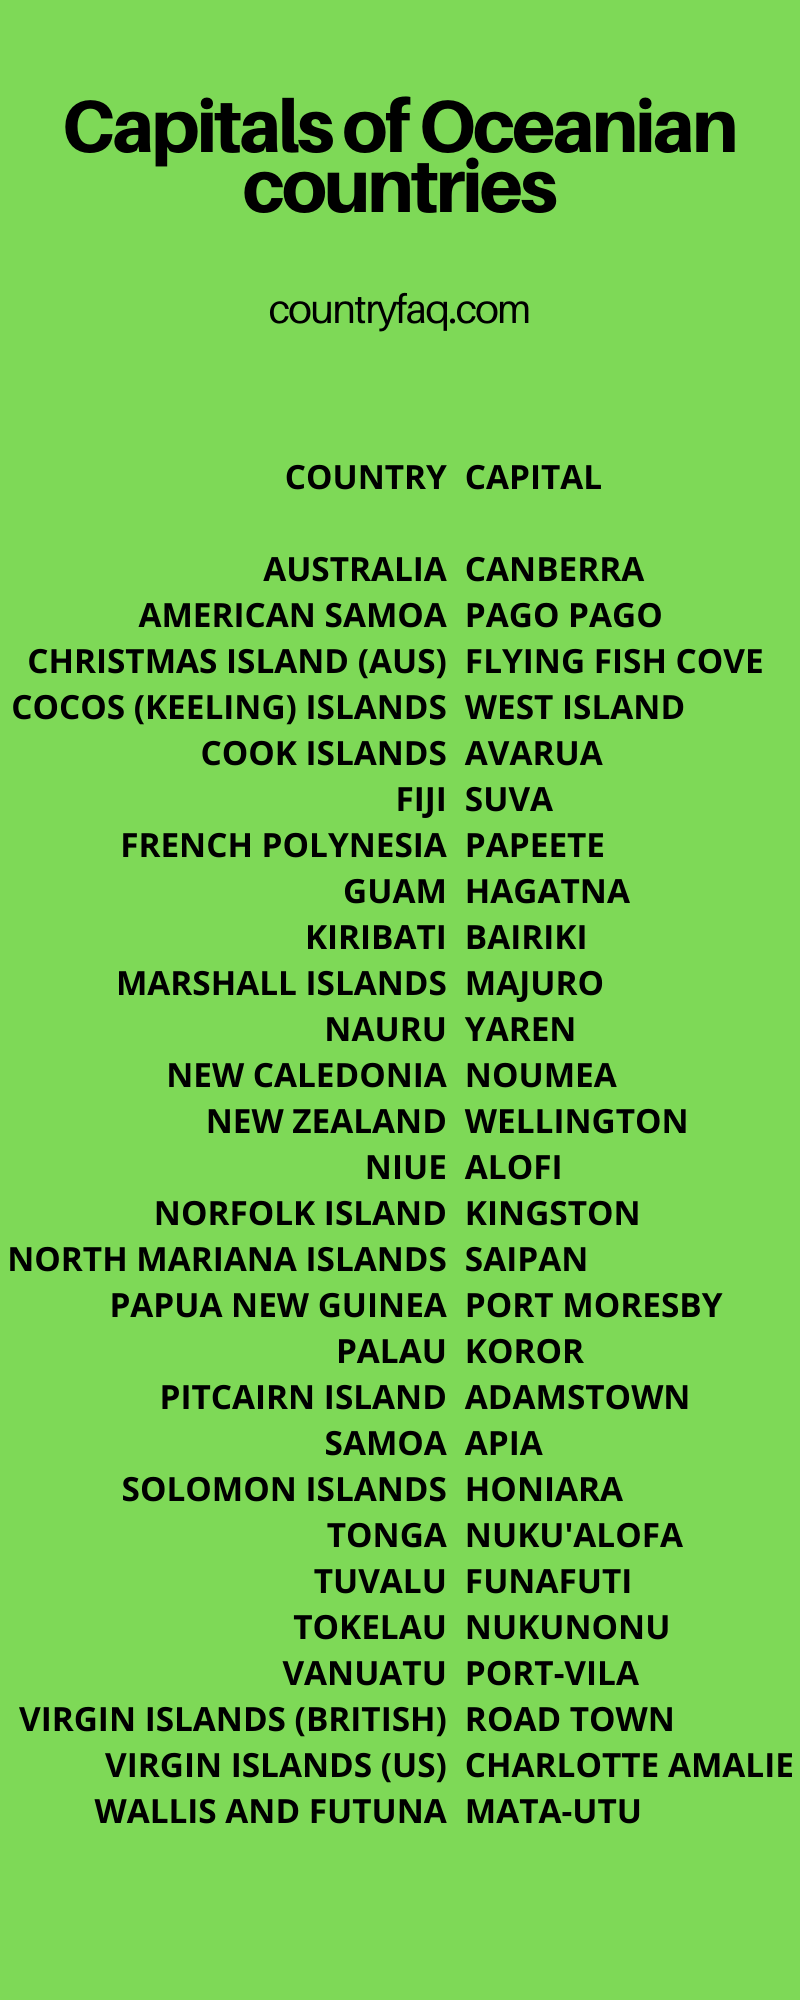 capitals of oceania oceania countries and capitals australia and oceania countries and capitals countries in oceania and their capitals oceania countries and capitals map oceania countries capitals oceania map with capitals list of oceania countries and capitals